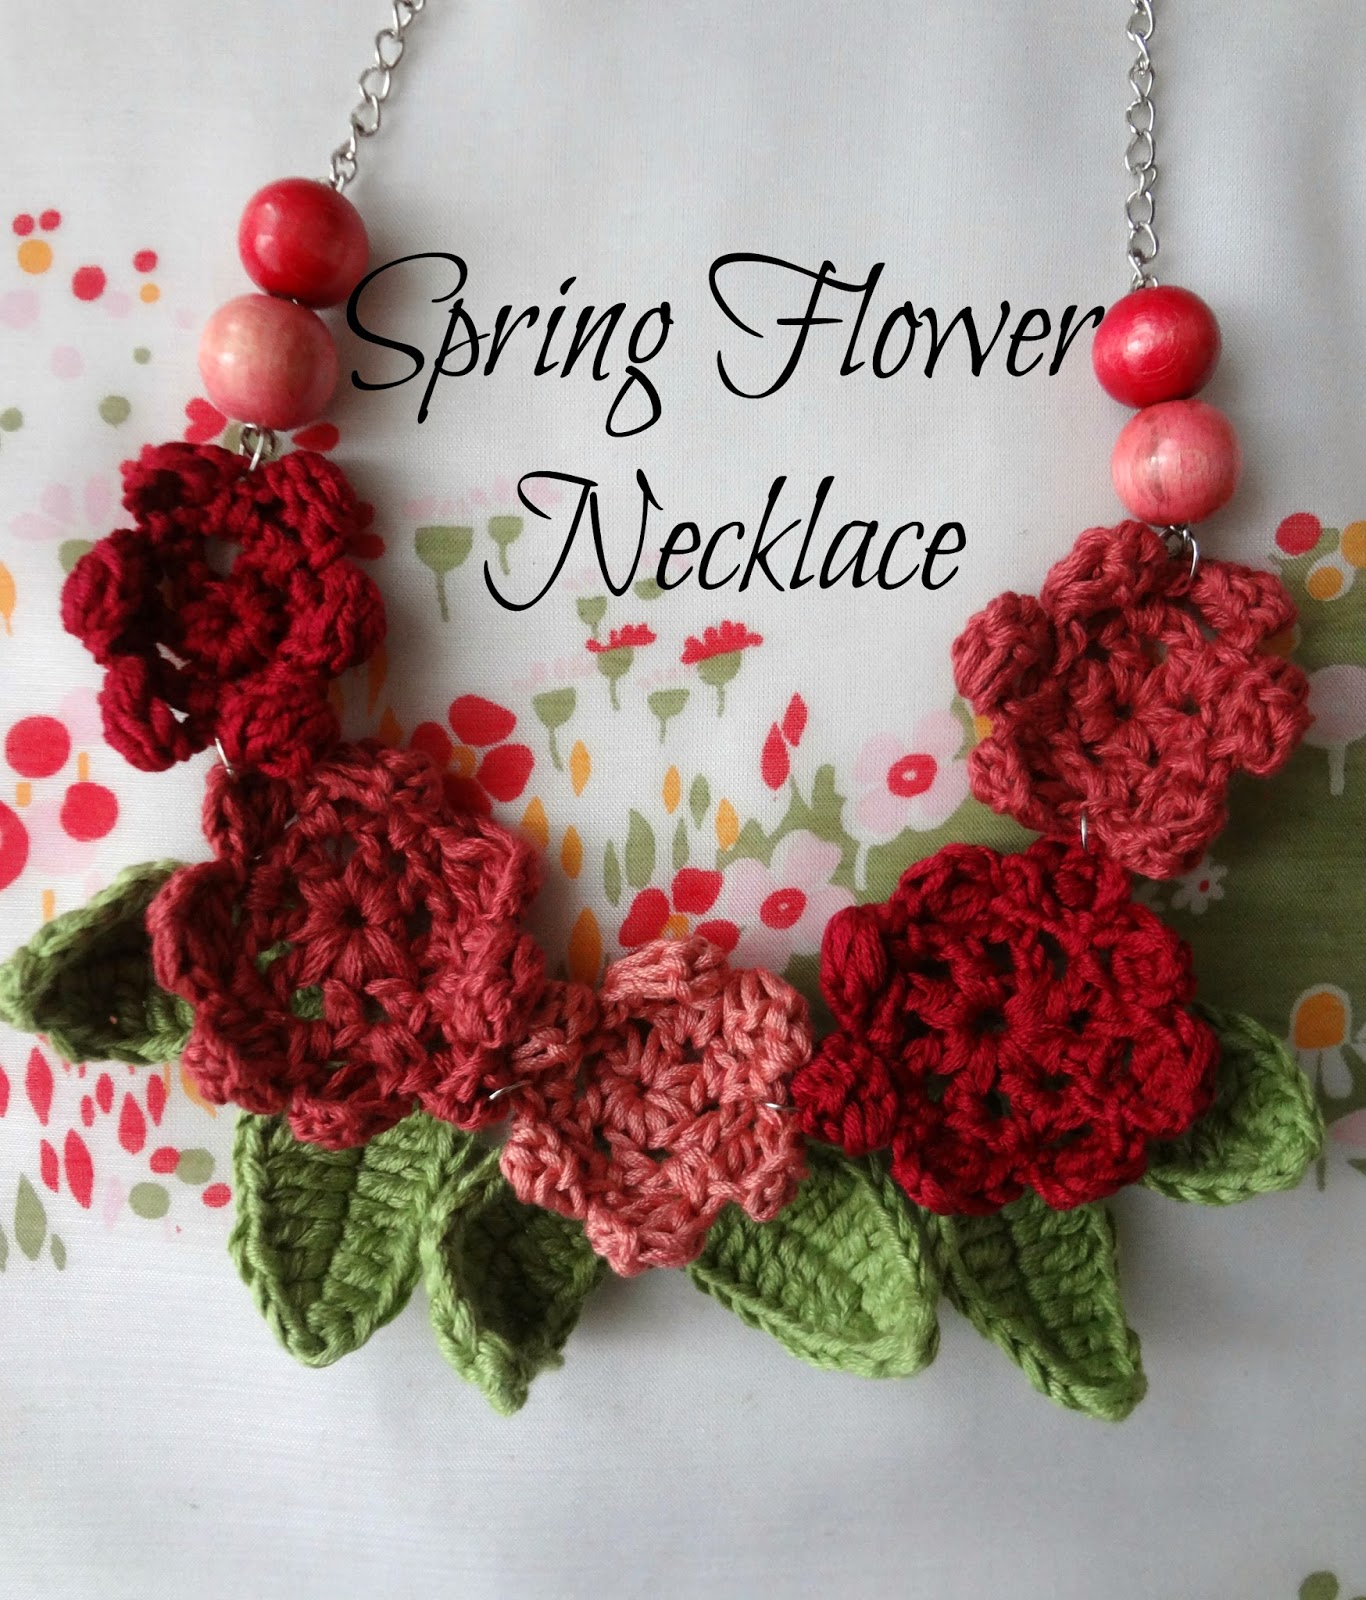 Crochet Patterns Necklace : Little Treasures: Spring Flower Necklace 2- a crochet pattern